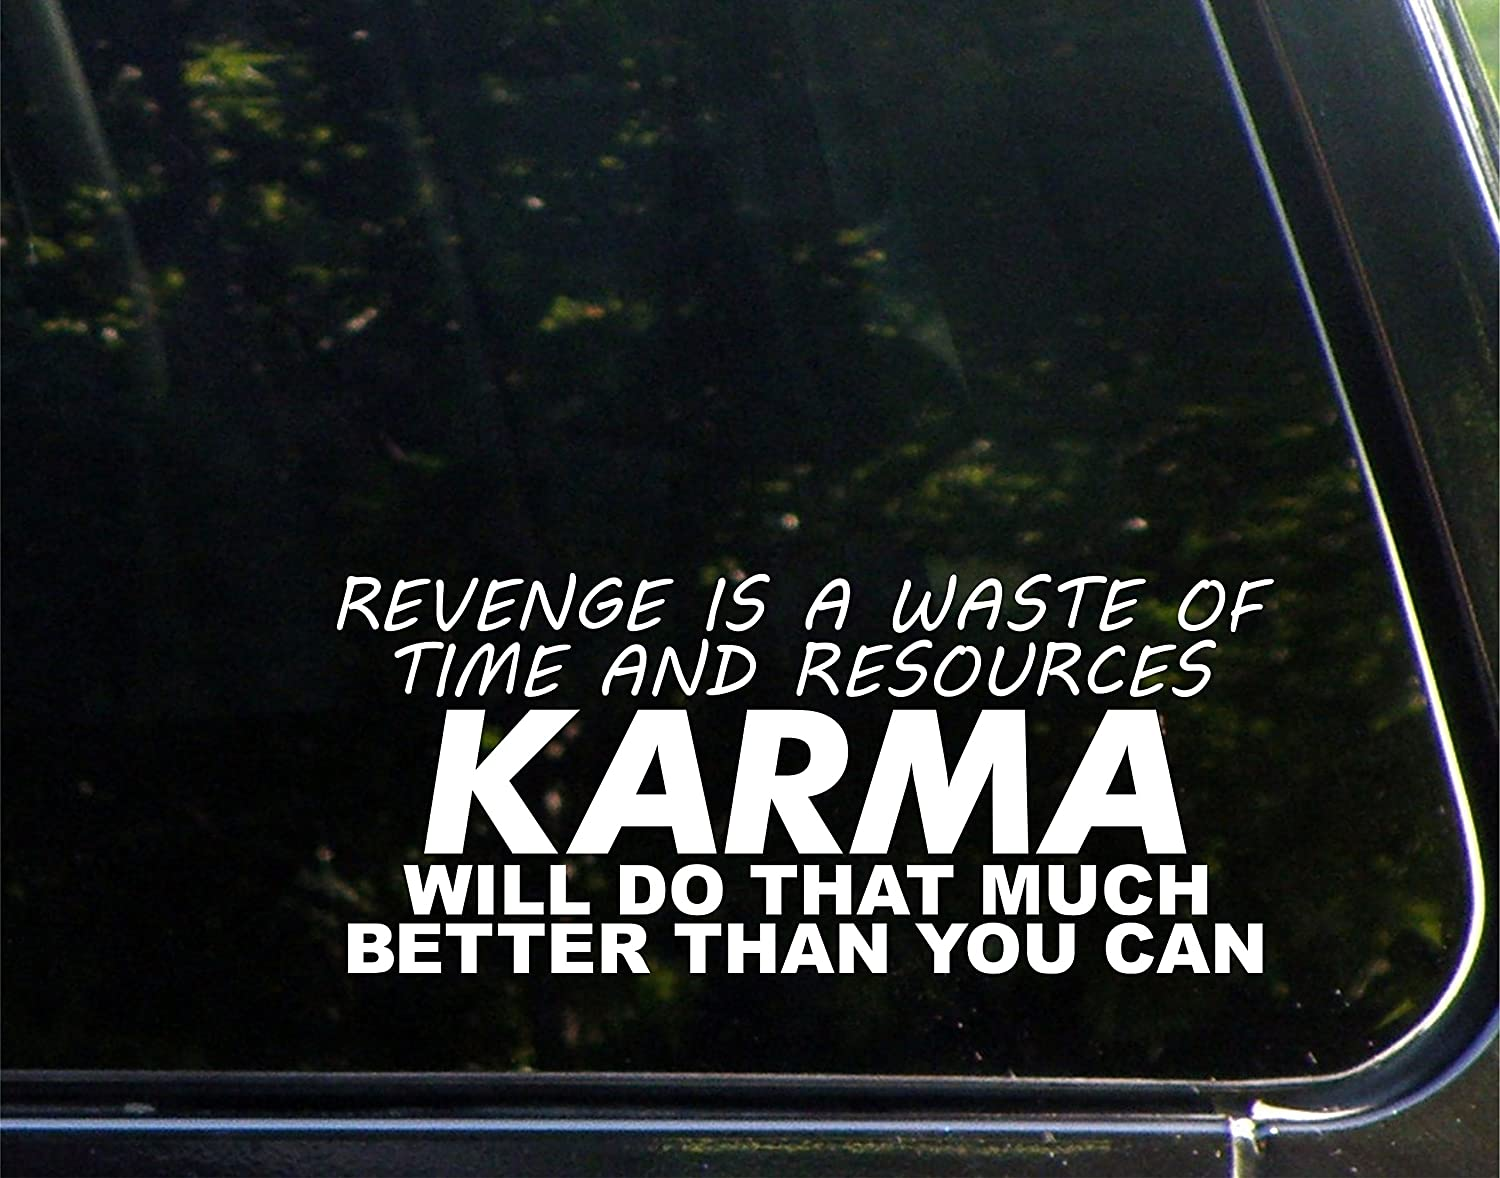 "Revenge is A Waste of Time and Resources Karma Will Do That Much Better Than You Can - 8-3/4"" x 3-3/4"" - Vinyl Die Cut Decal/Bumper Sticker for Windows, Cars, Trucks, Laptops, Etc."